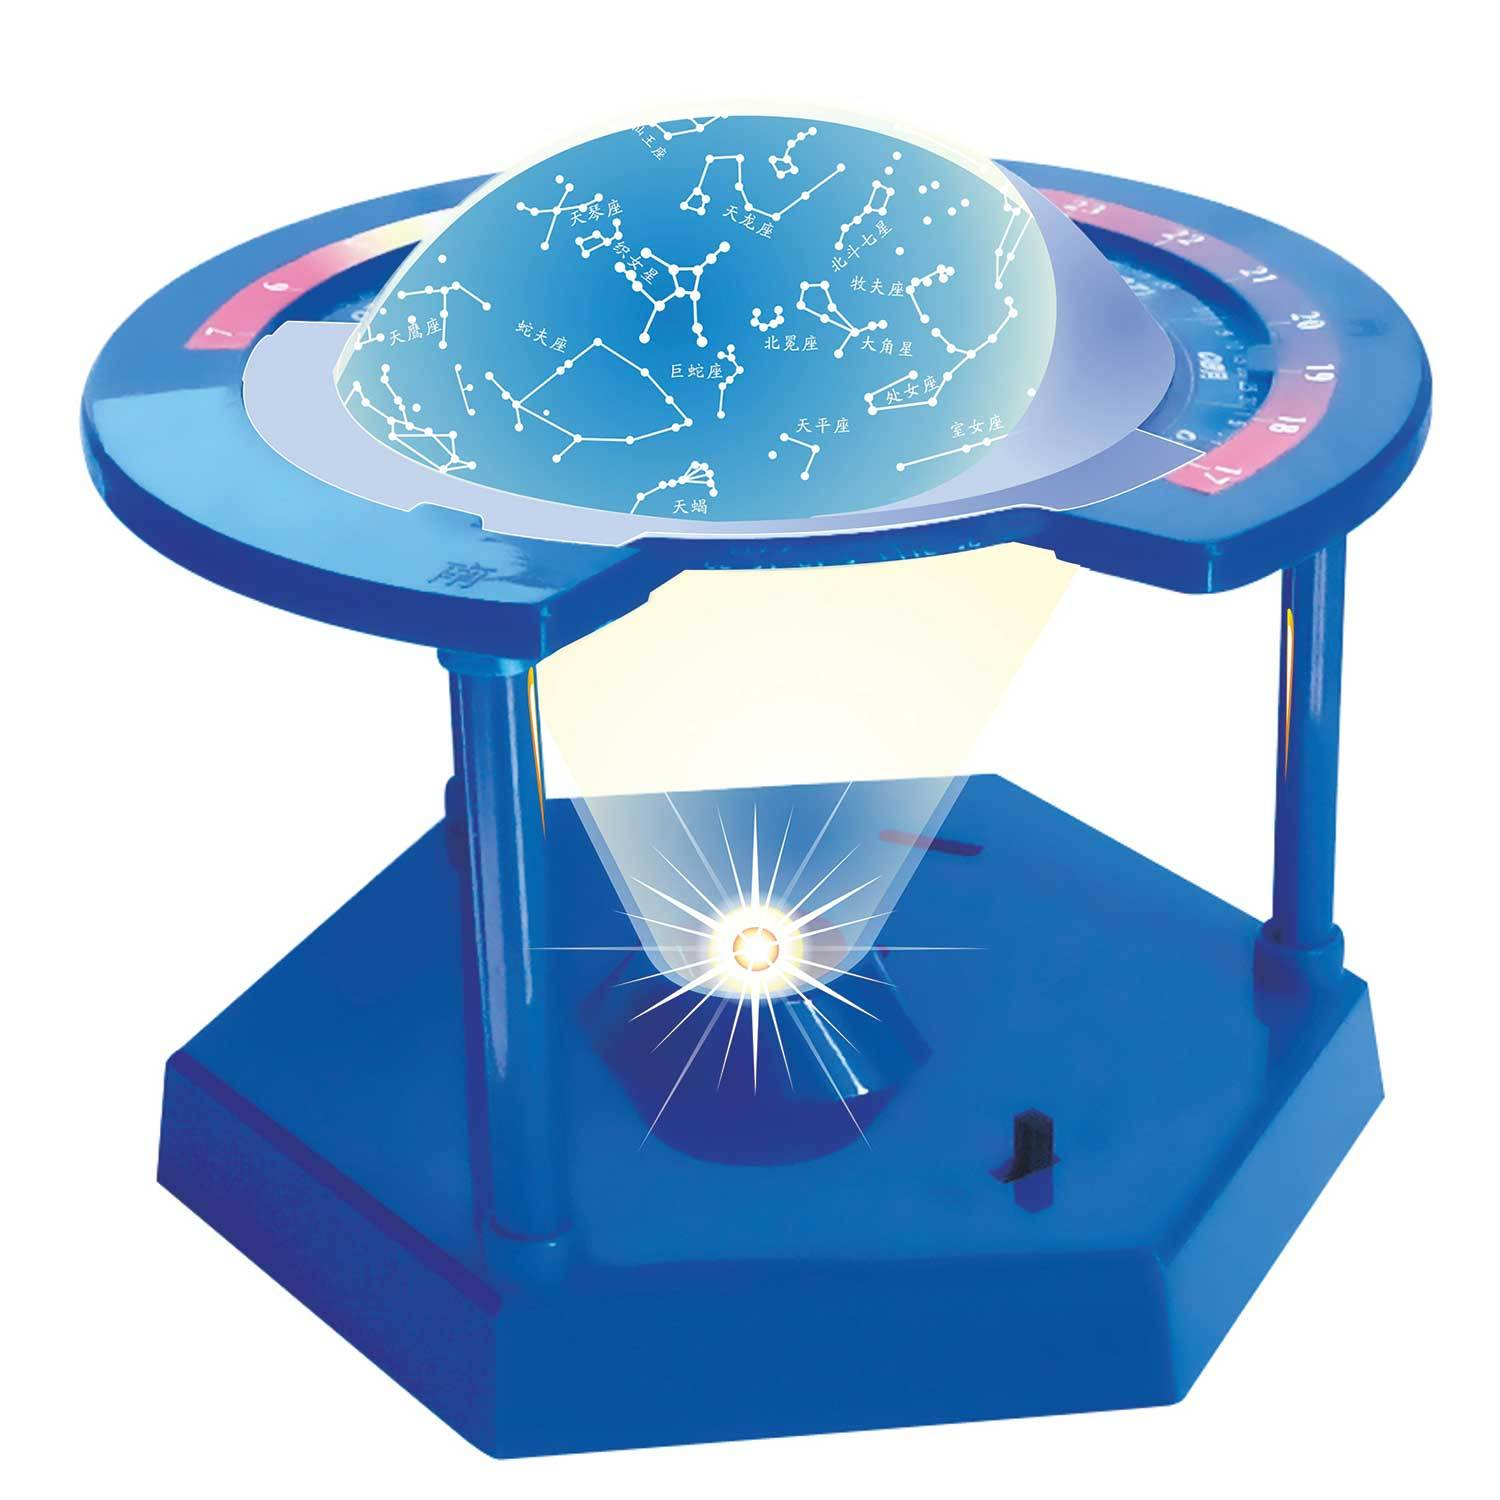 Planetarium Easy-Build Astronomy Kit by Heebie Jeebies